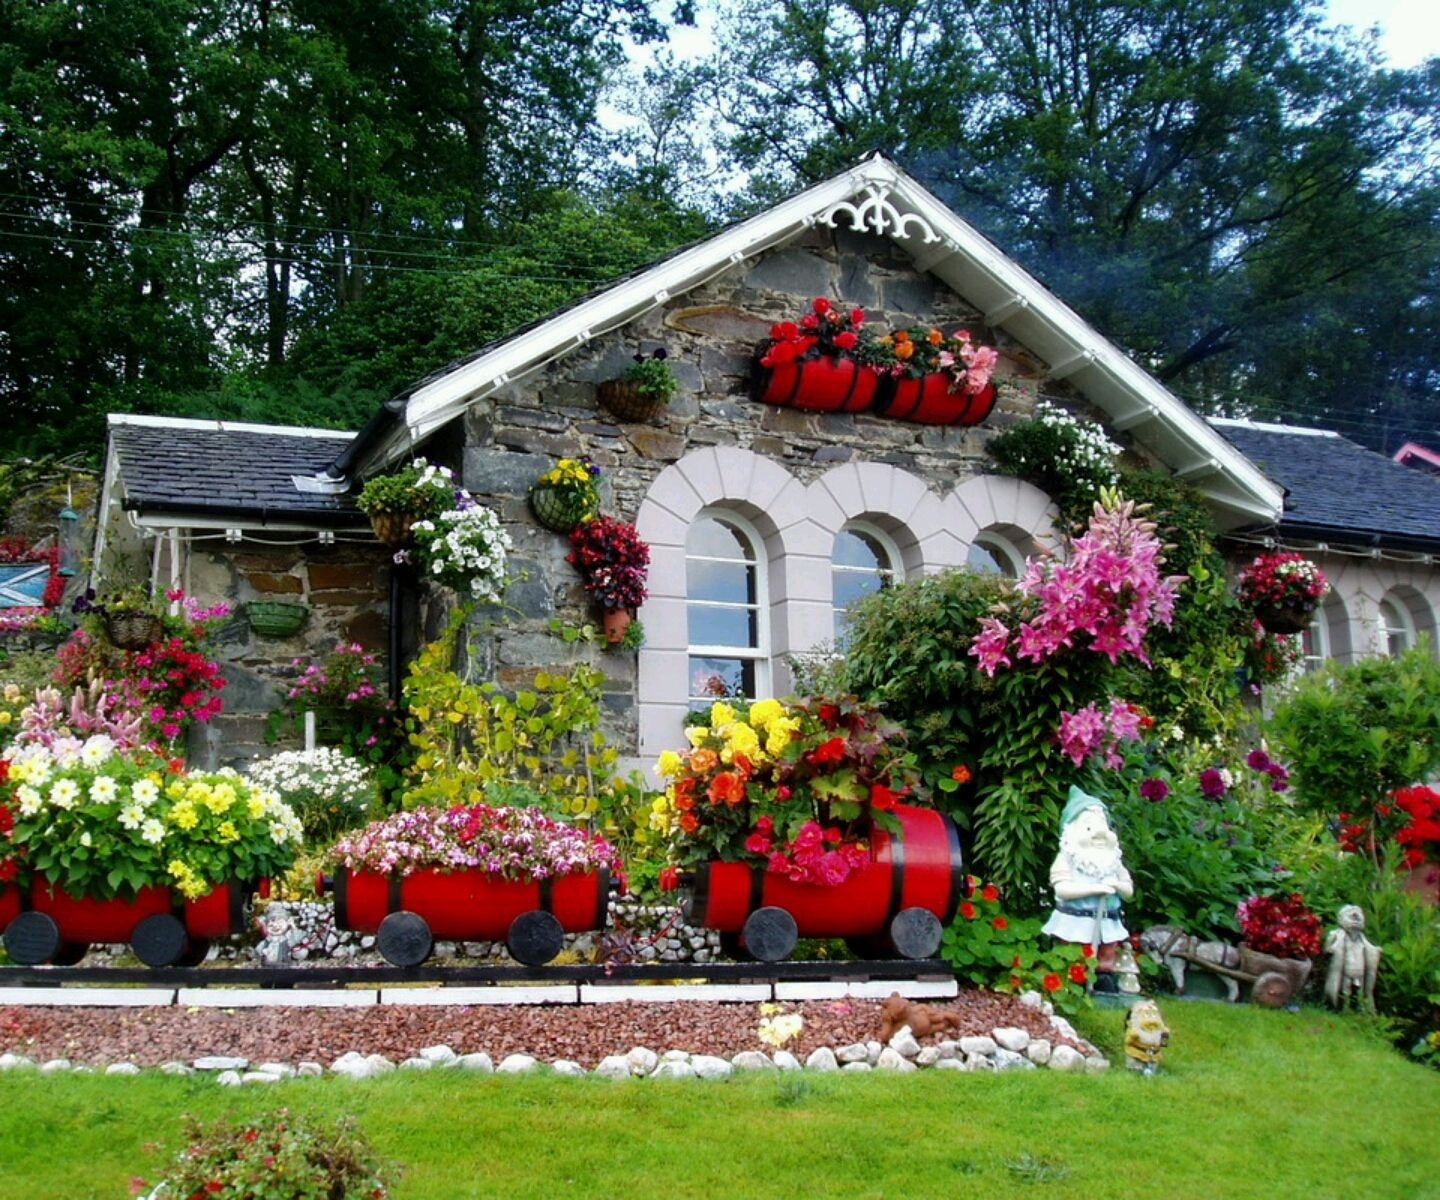 10 House With Beautiful Garden Ideas Beautiful Gardens Total Beauty Beautiful Home Gardens